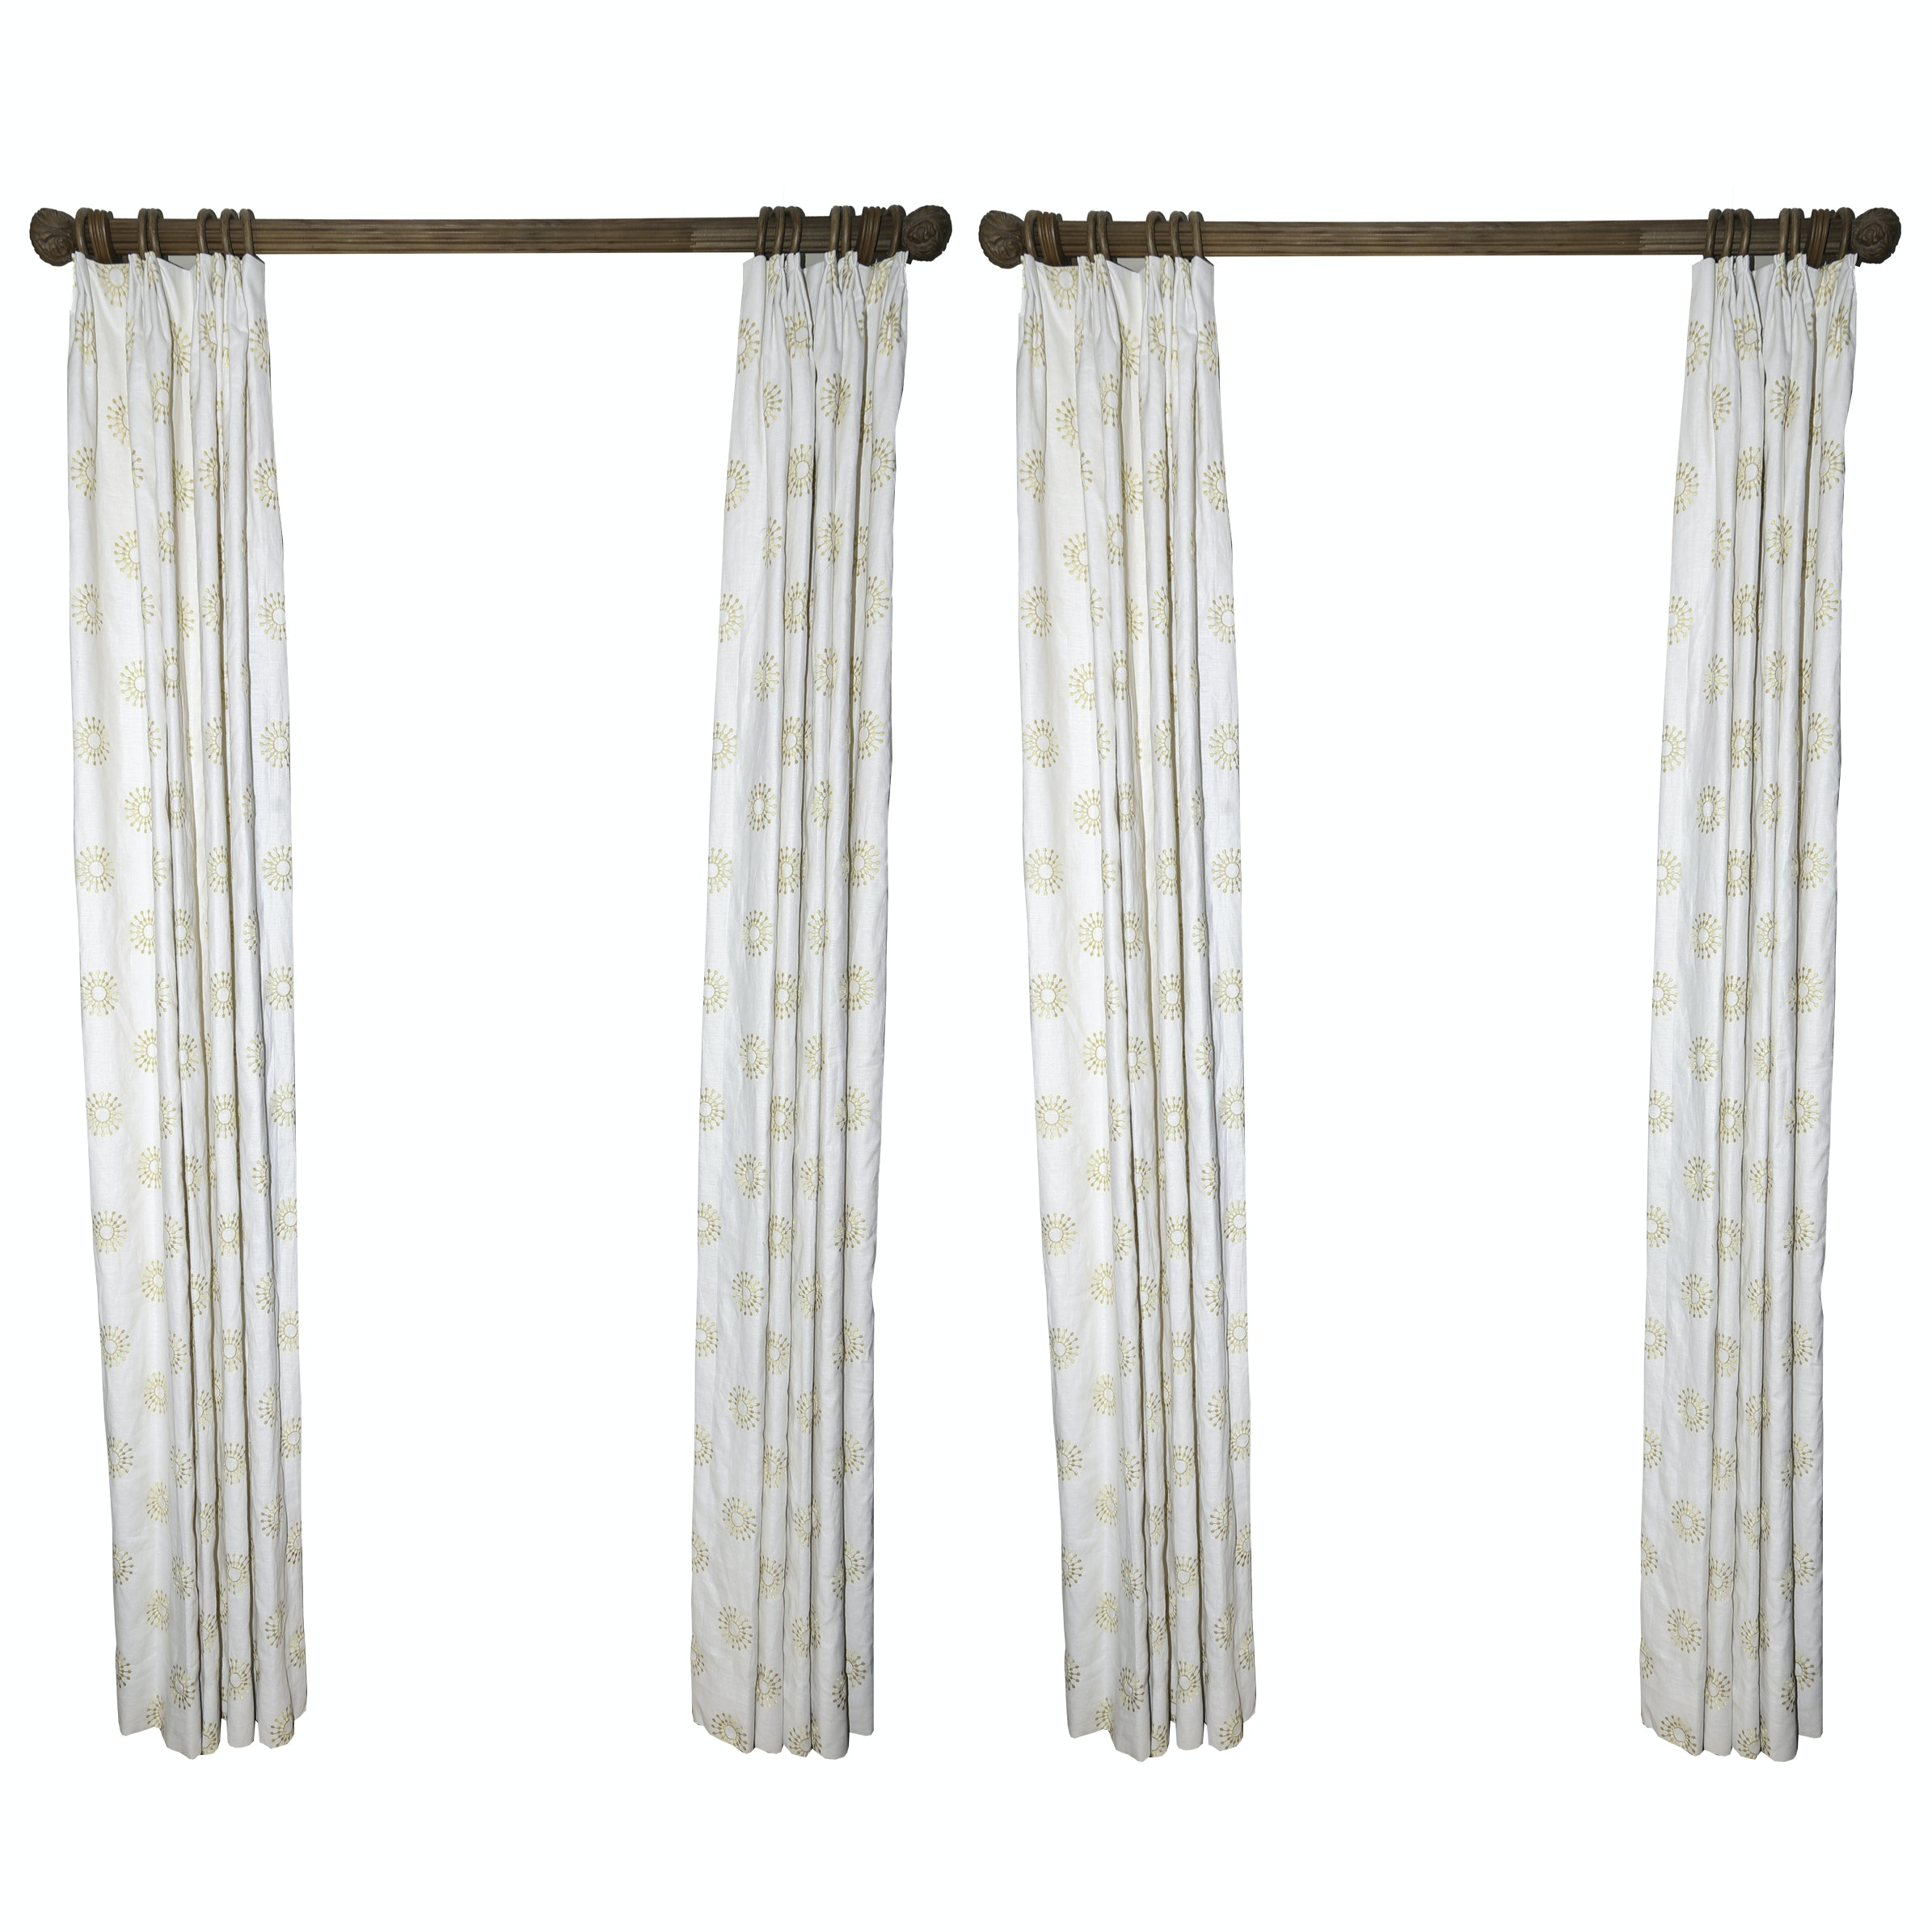 Draperies and Curtain Rods